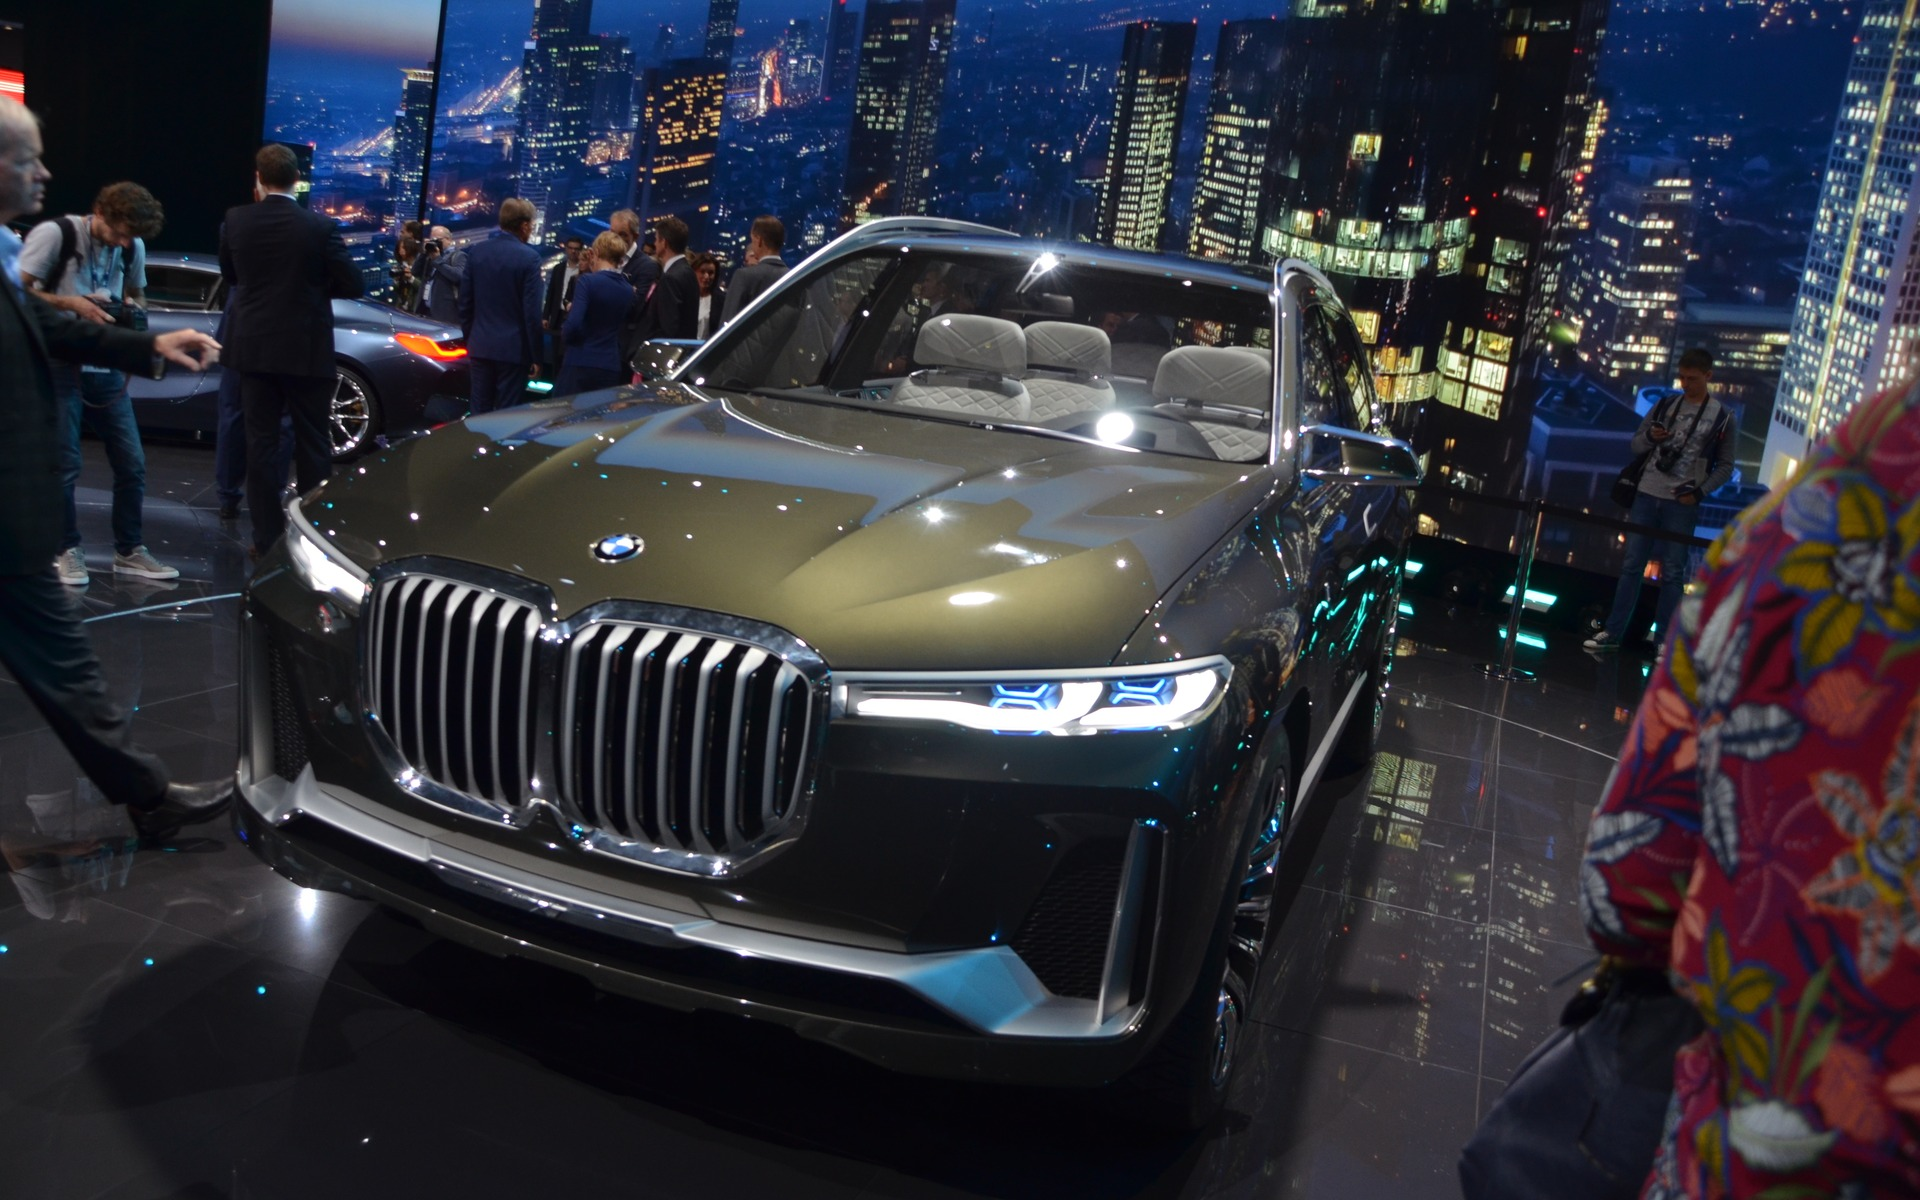 Bmw Introduces The X7 Iperformance Concept A Luxury Hybrid Suv